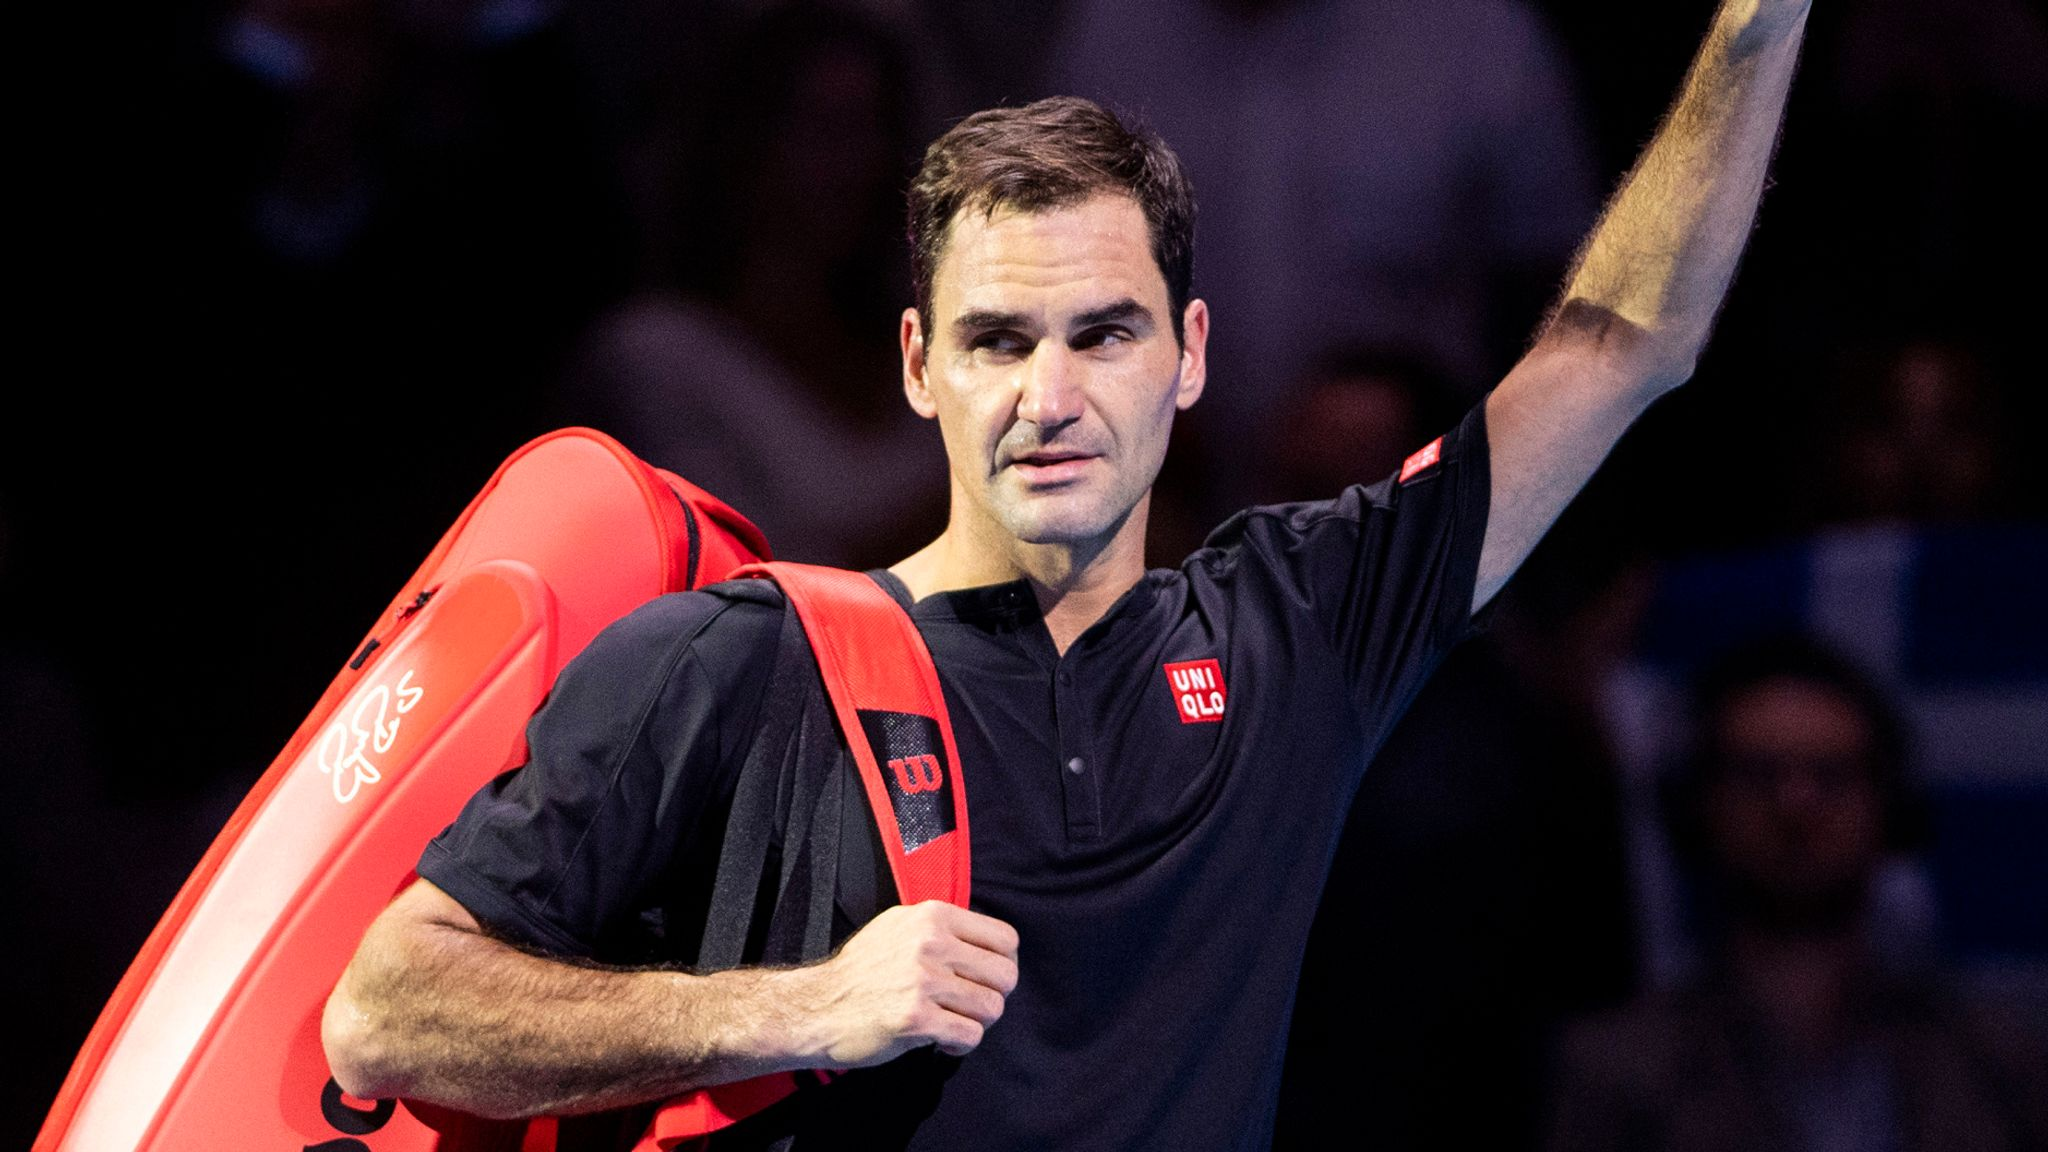 Roger Federer sees 'no reason' to stop playing tennis and retire from the sport